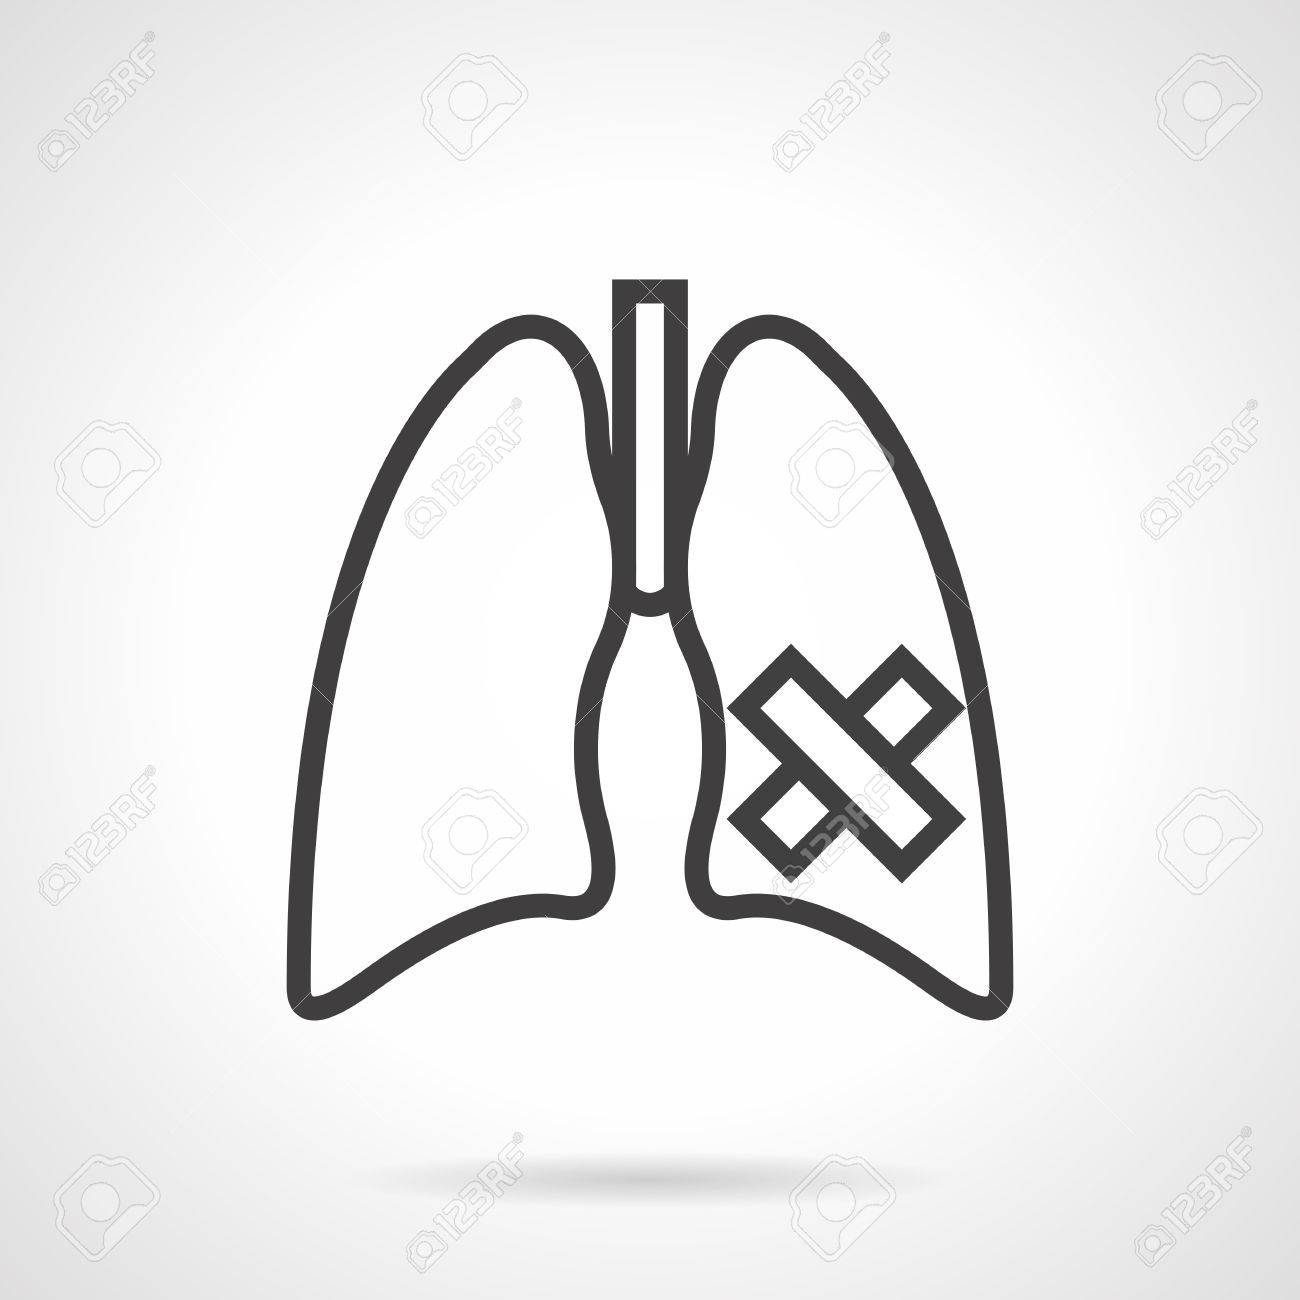 Symbol of lung disease cancer tuberculosis pneumonia royalty symbol of lung disease cancer tuberculosis pneumonia stock vector 68780943 biocorpaavc Images